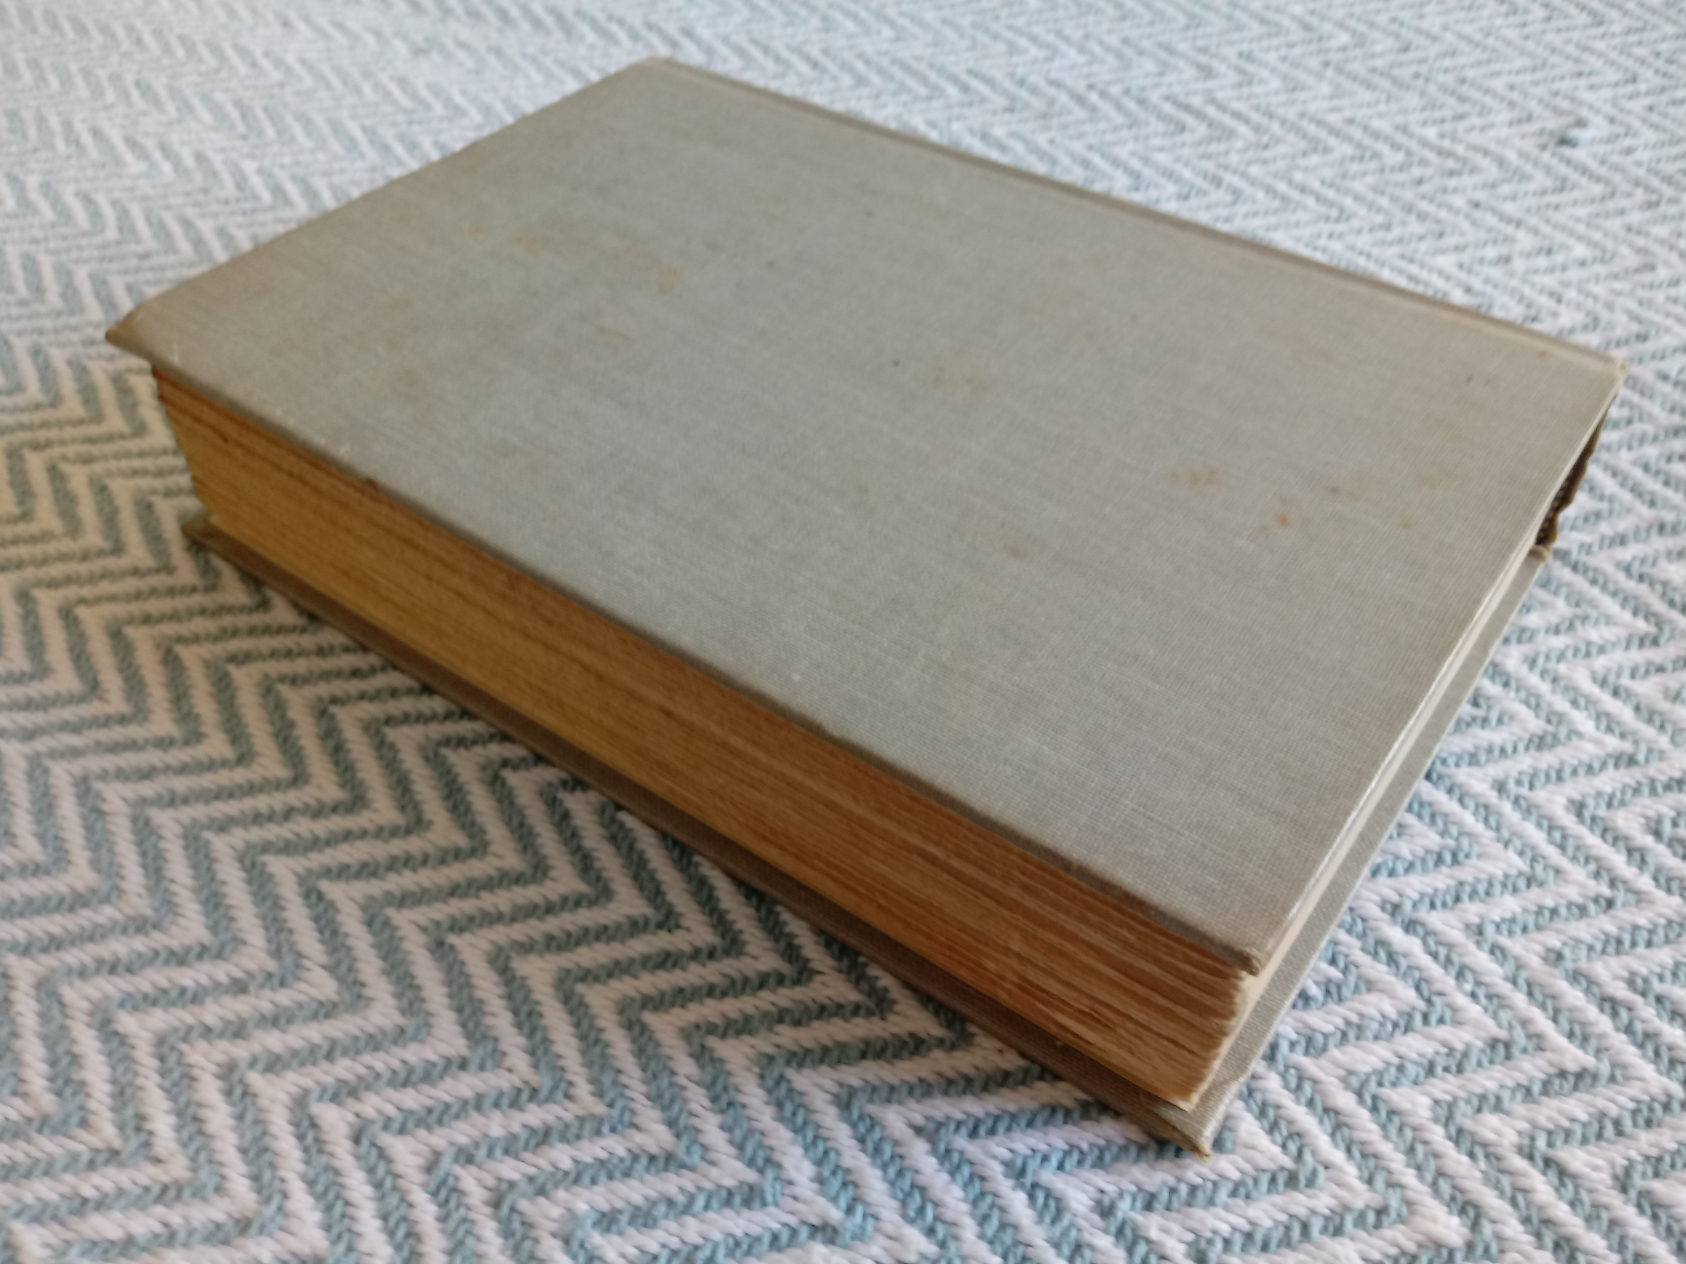 2 x The Tontine Volumes 1&2 by Thomas B. Costain hardback books 465 and 930 pages with inscription - Image 6 of 8